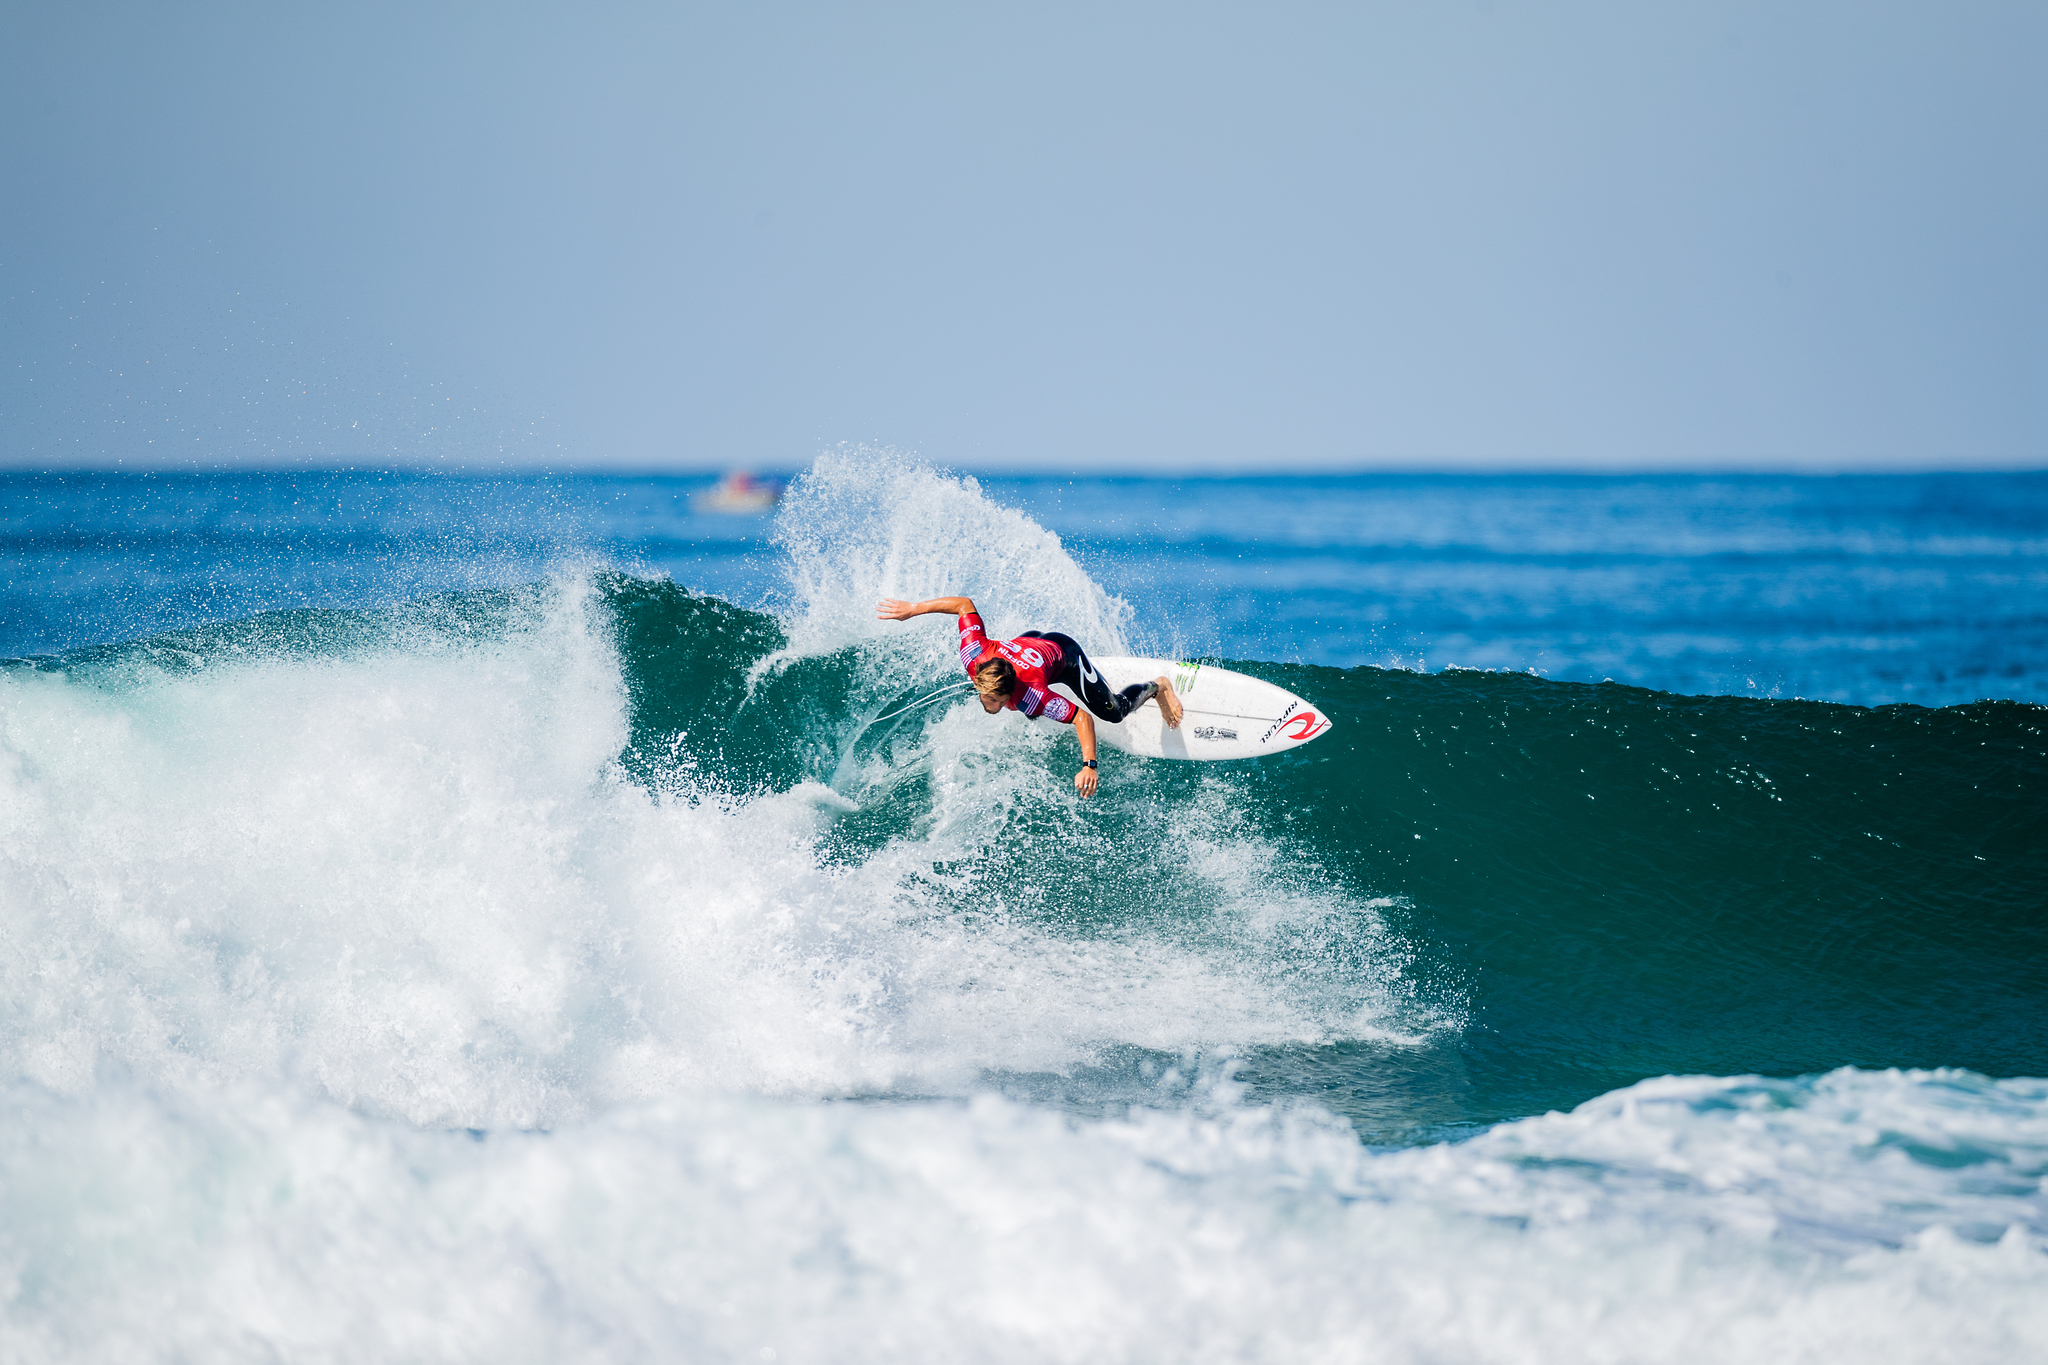 NARRABEEN, AUS - APRIL 20: Conner Coffin of the United States surfing in Heat 3 of the Quarterfinals of the Rip Curl Narrabeen Classic presented by Corona on April 20, 2021 in Narrabeen, Australia. (Photo by Matt Dunbar/World Surf League via Getty Images)